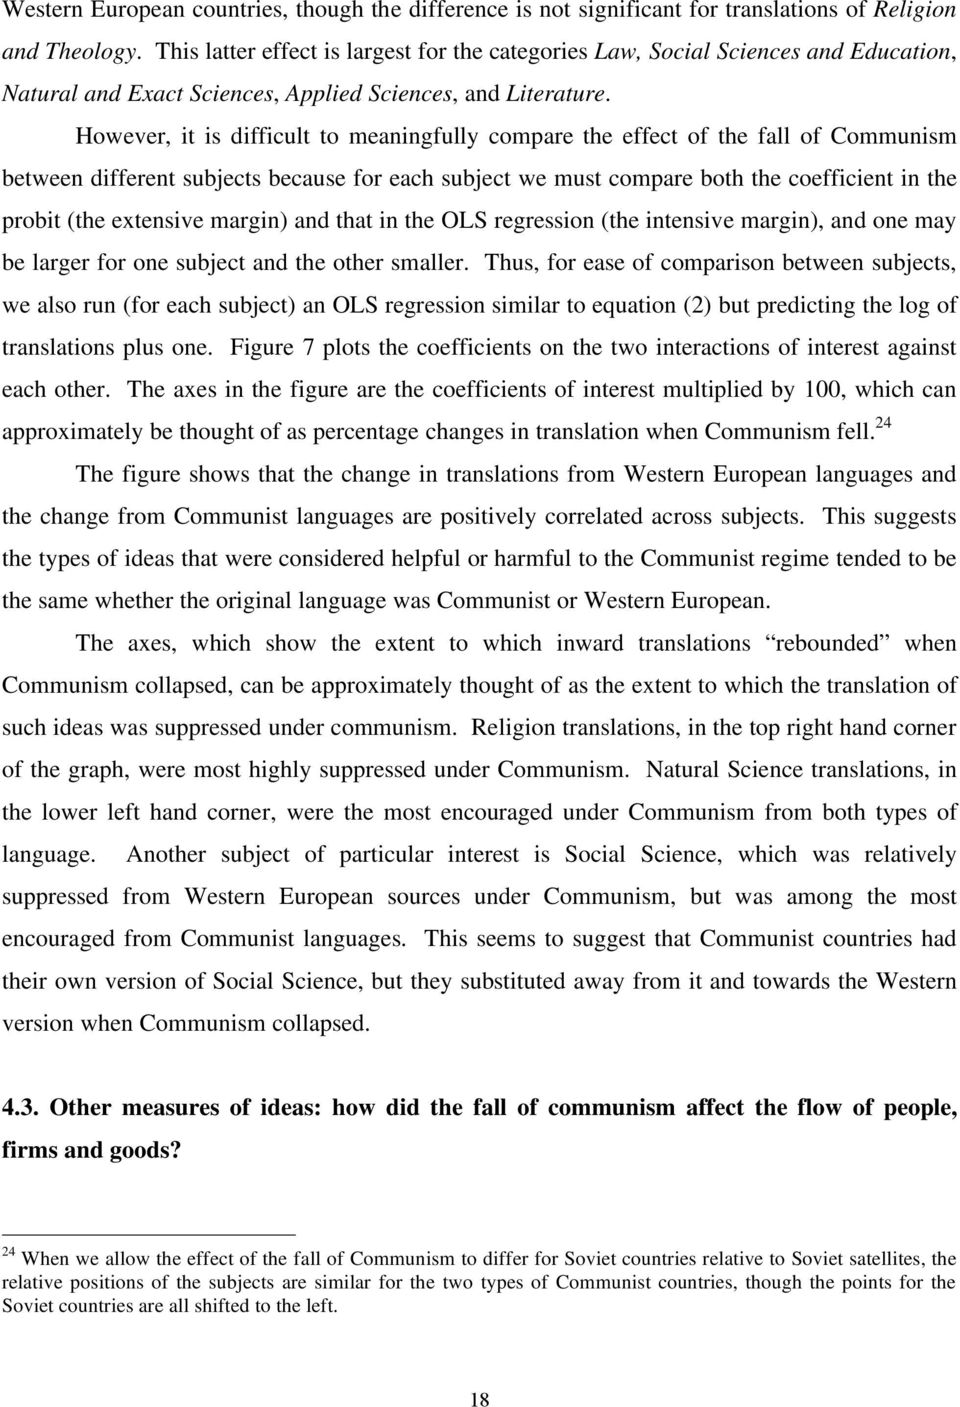 However, it is difficult to meaningfully compare the effect of the fall of Communism between different subjects because for each subject we must compare both the coefficient in the probit (the